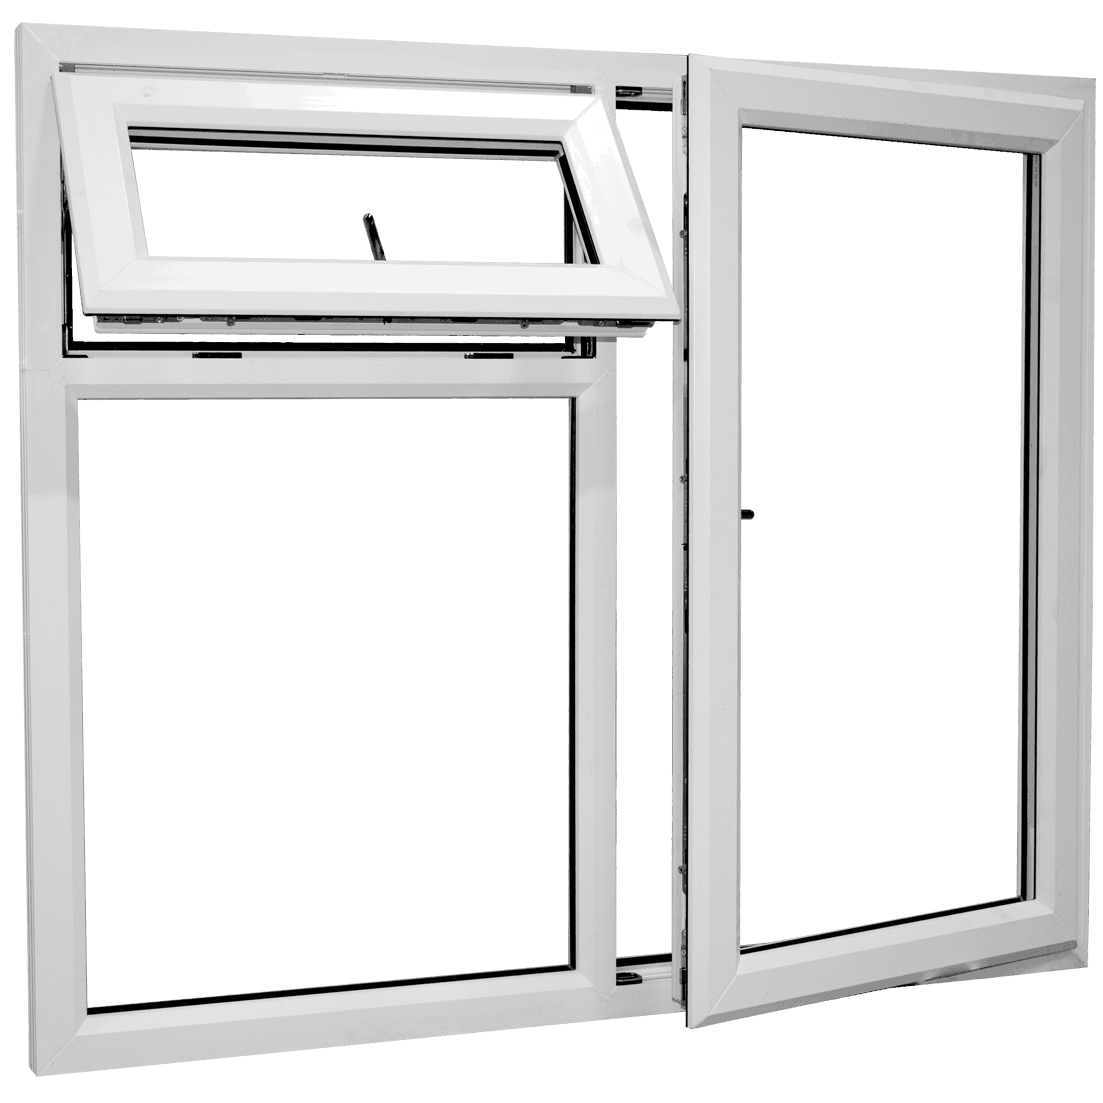 Why Ecostar UPVC double glazed windows and doors are better than aluminium and timber windows and doors